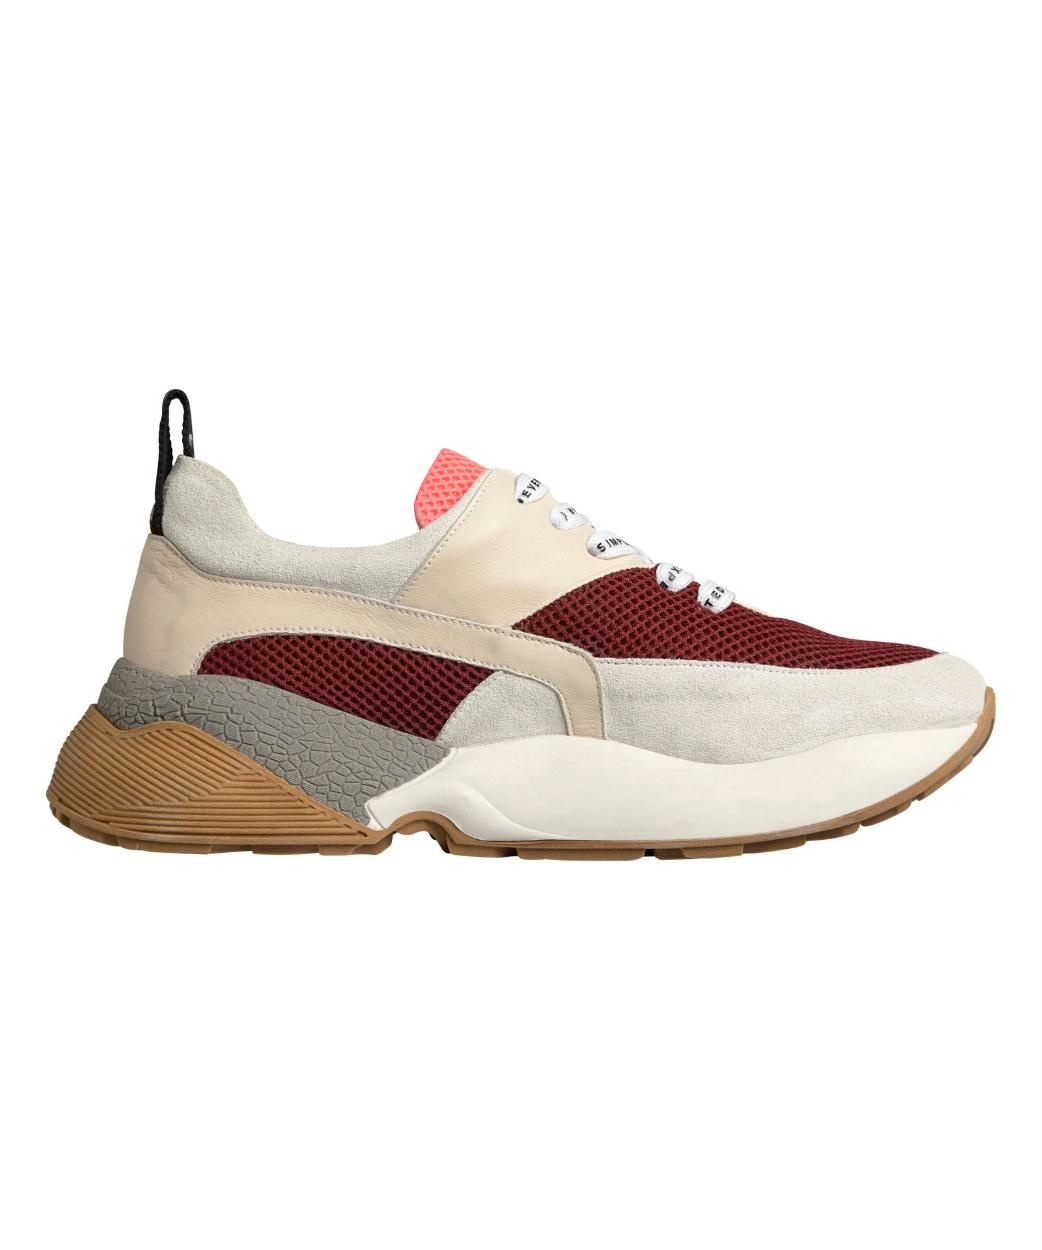 10Days Dark Red Tech Sneakers 20.935.9103/8